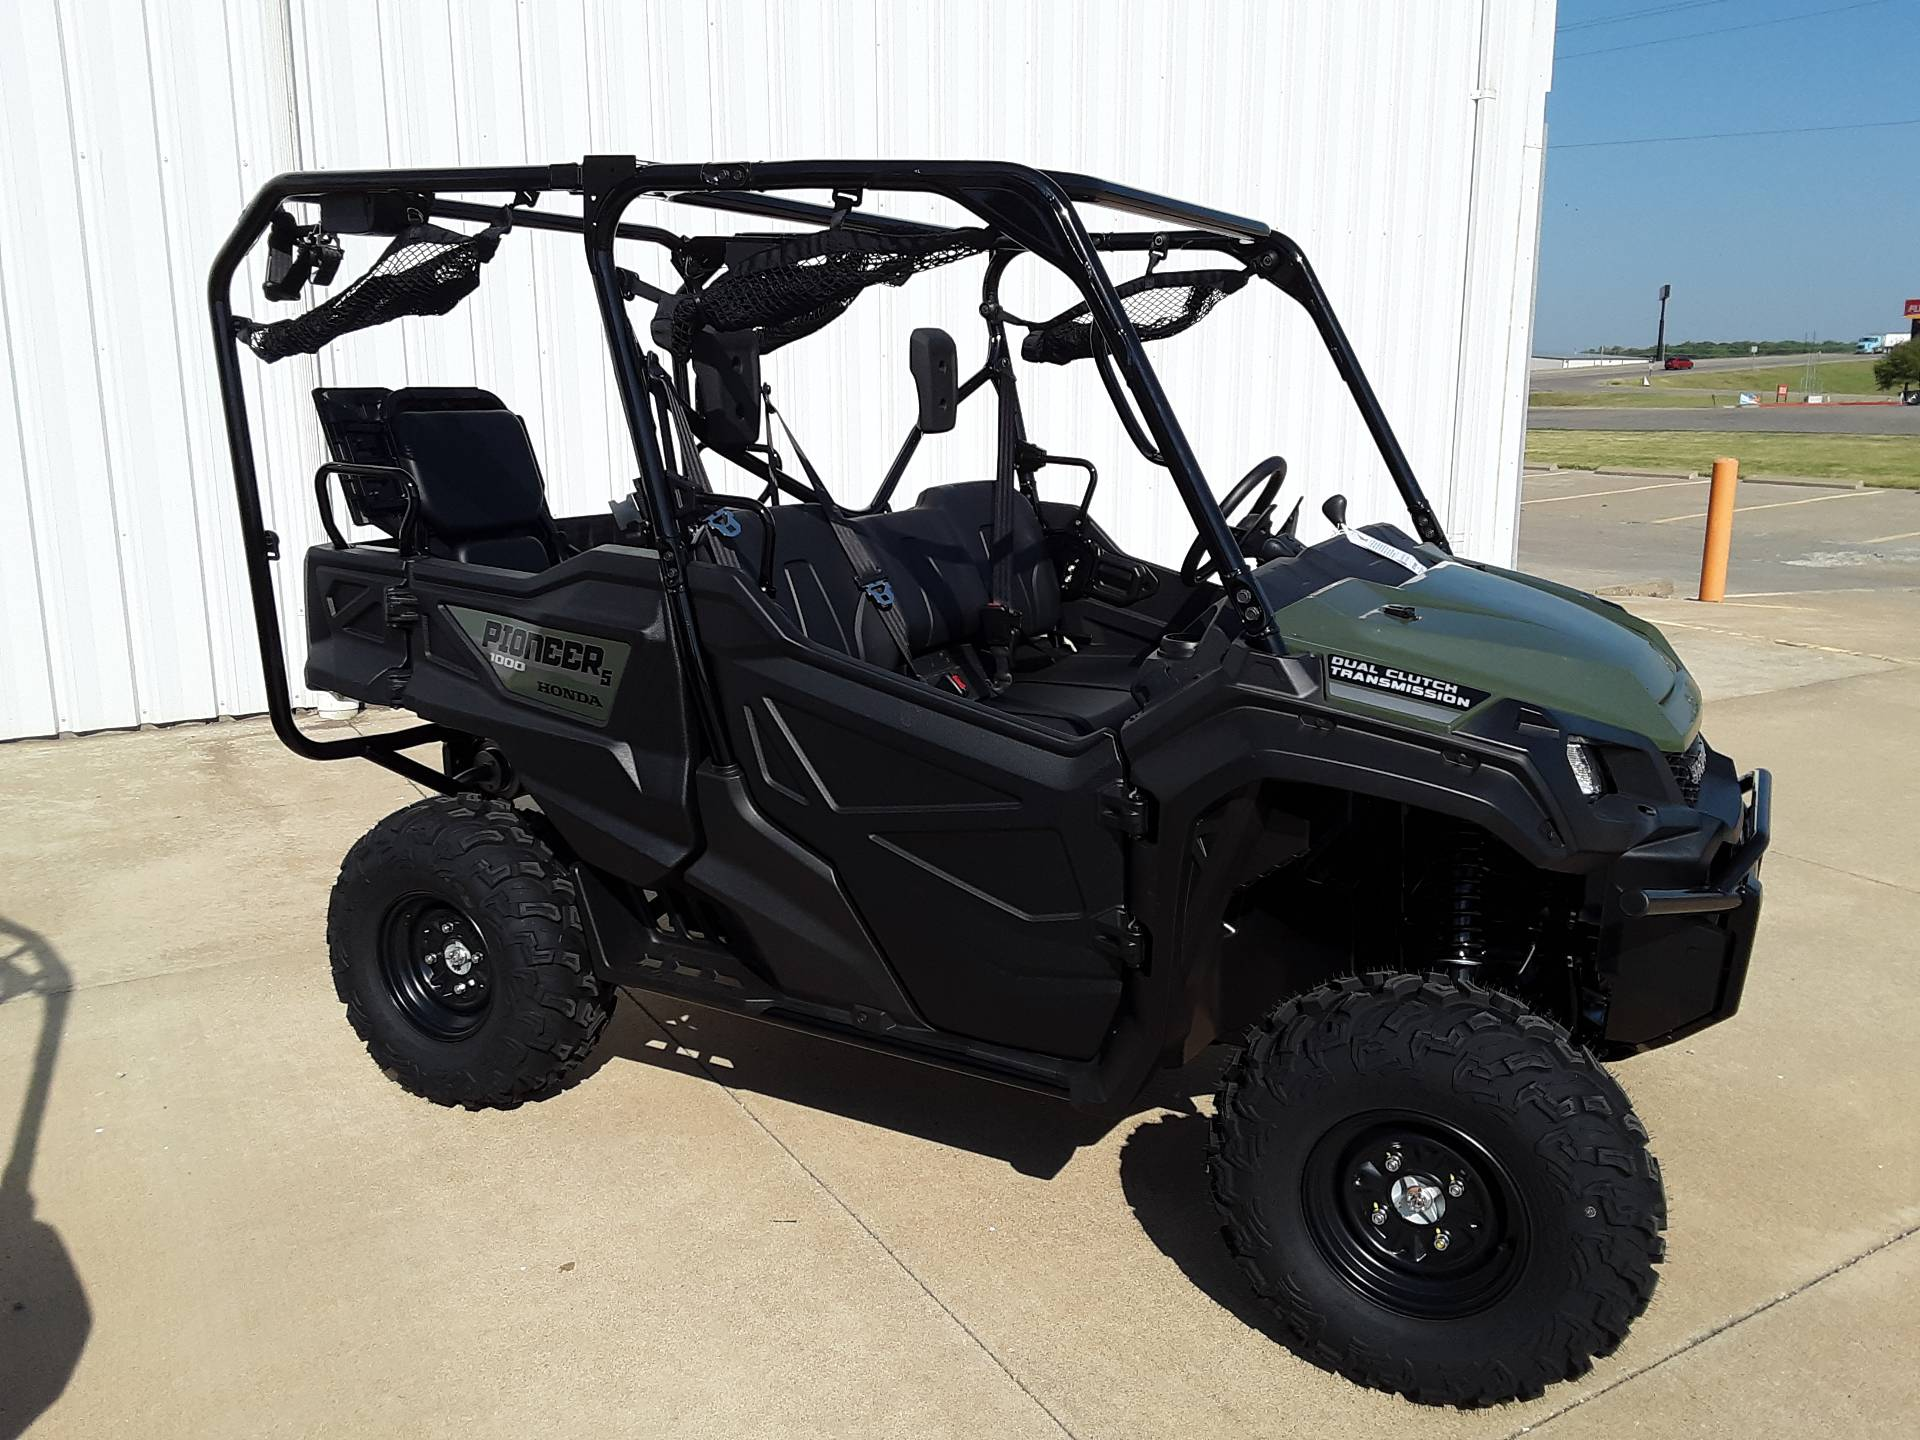 2021 Honda PIONEER 1000 - 5 in Salina, Kansas - Photo 1